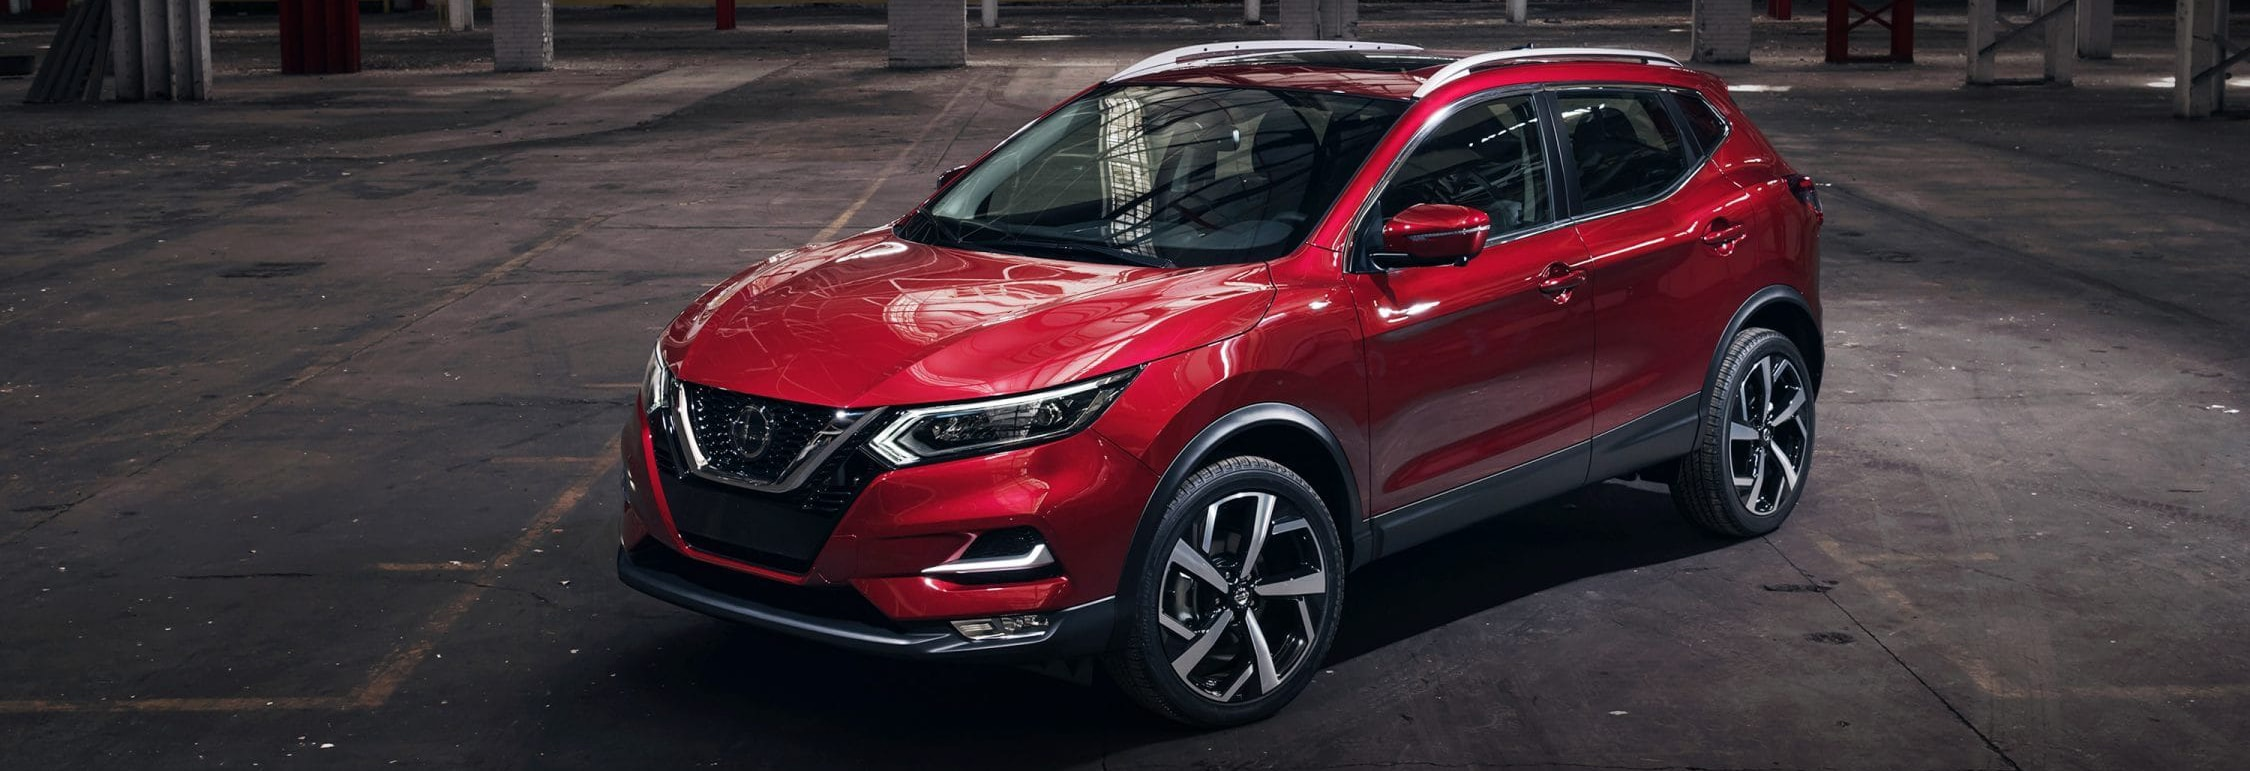 Introducing the All-New 2020 Nissan Rogue Sport at Larry H. Miller Nissan San Bernardino in San Bernardino, CA